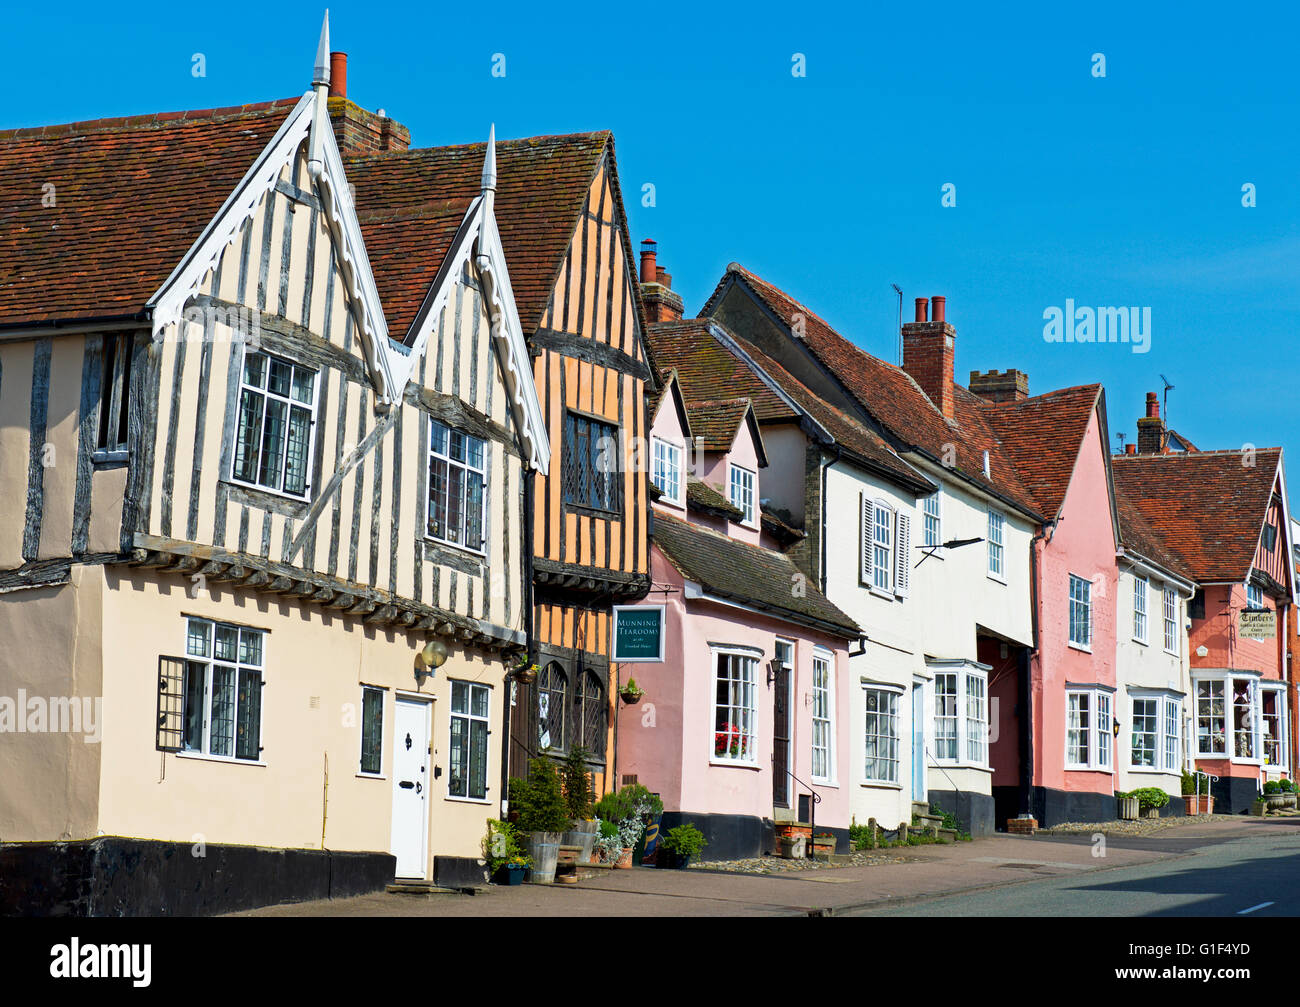 The Crooked House in the village of Lavenham, Suffolk, England UK - Stock Image